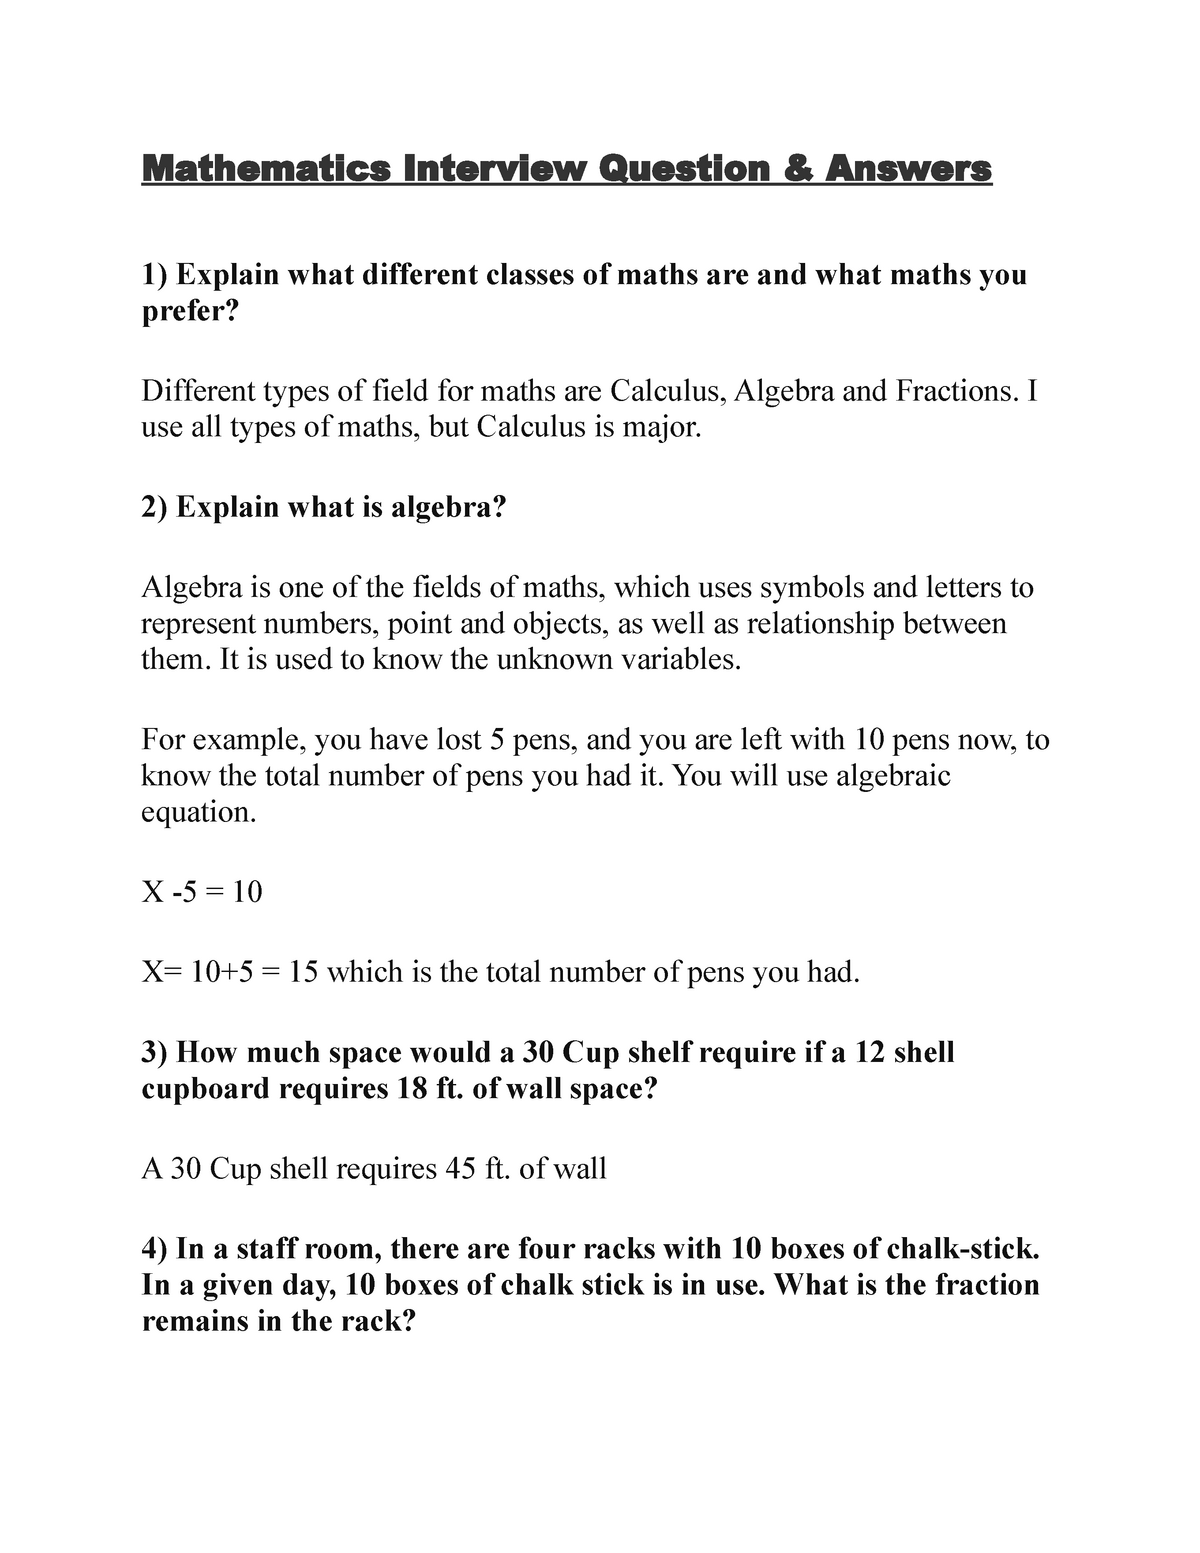 Maths viva - Mathematics viva and assignment questions and